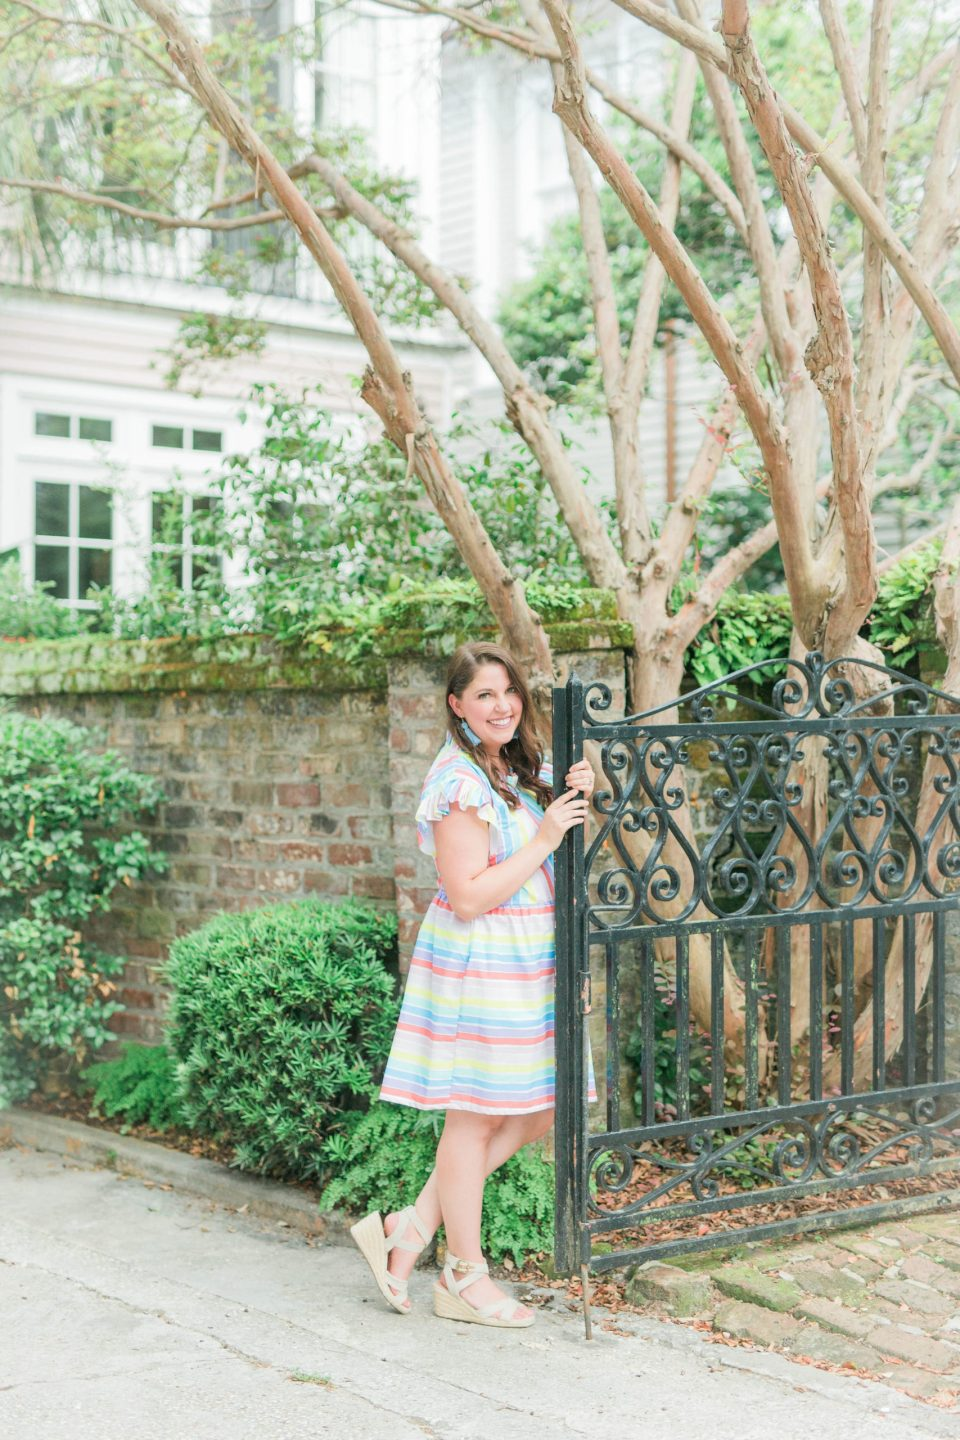 #1 Way to Get More Reviews for your photography business: Kate Dye, Charleston photographer and educator, shares about how to get more reviews!